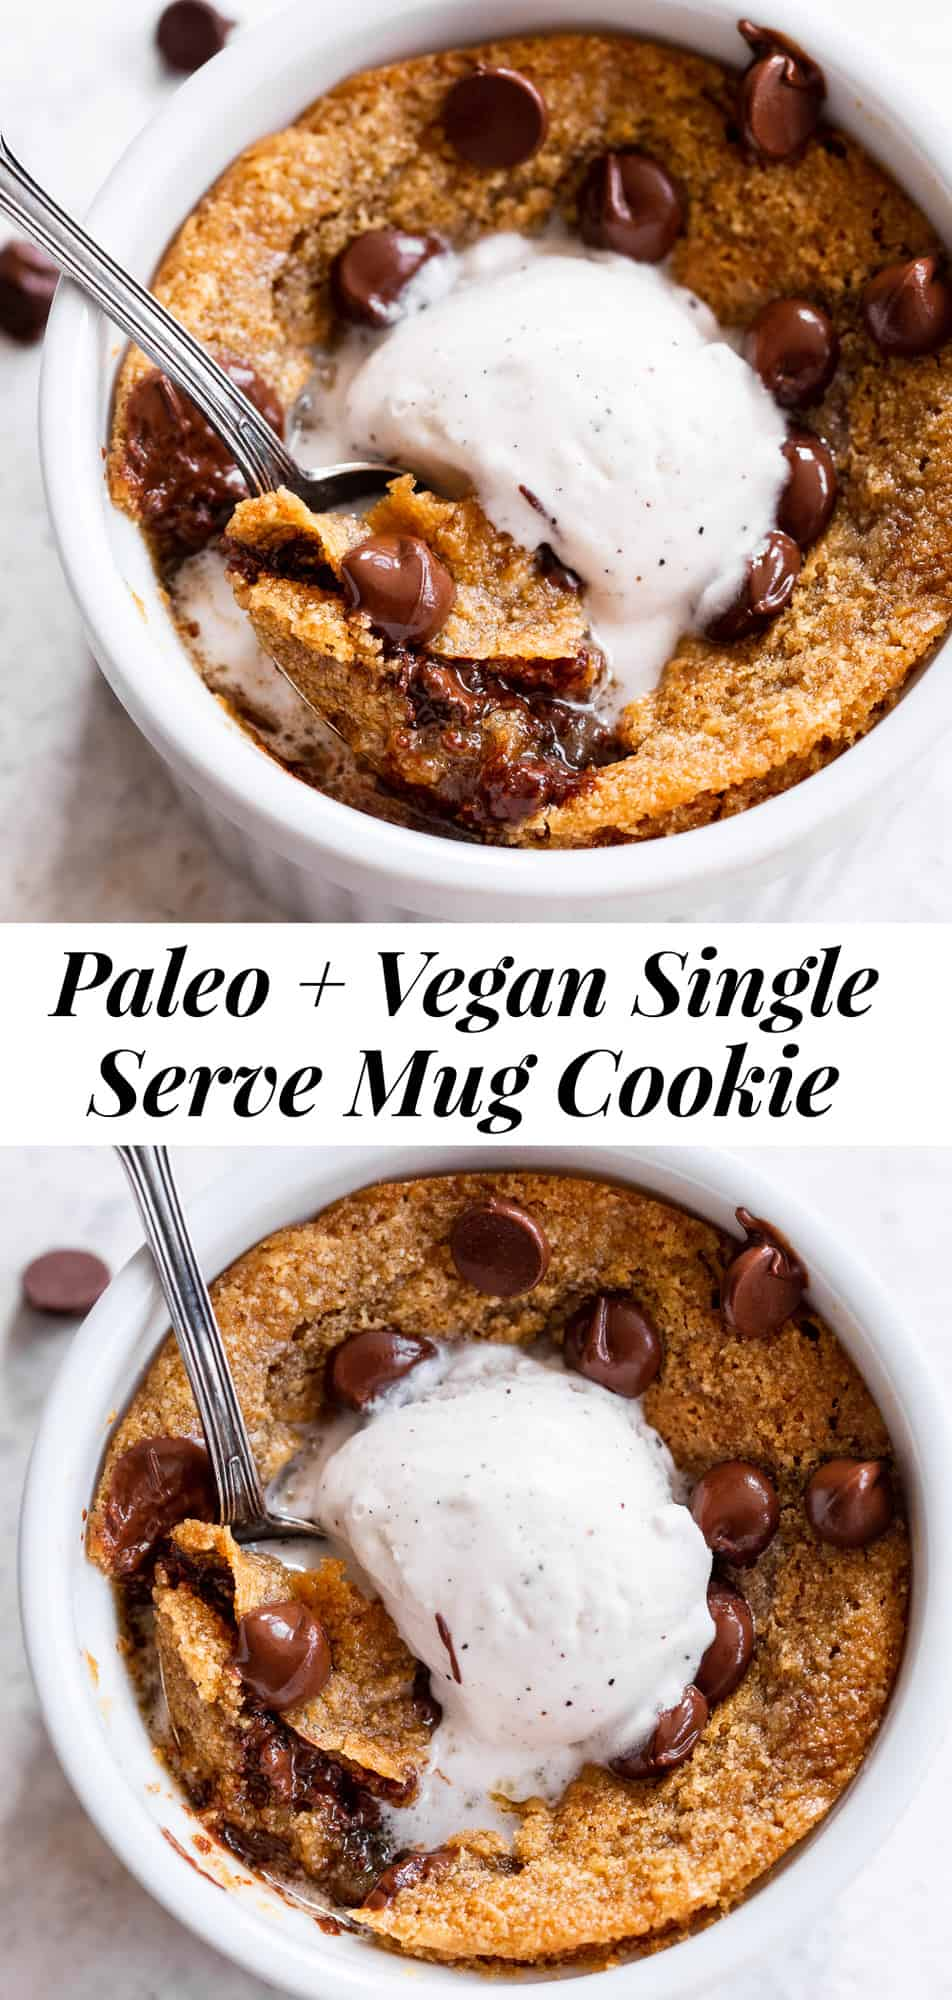 This easy, egg free deep dish chocolate chip cookie in a mug is perfect for when you're craving warm gooey homemade chocolate chip cookies but don't want an entire batch!  This single serve chocolate chip cookie is made in the toaster oven so you can enjoy a personal cookie sundae with extra chocolate chips and a scoop of dairy free vanilla ice cream on top! #paleo #vegan #paleobaking #glutenfree #mugcookie